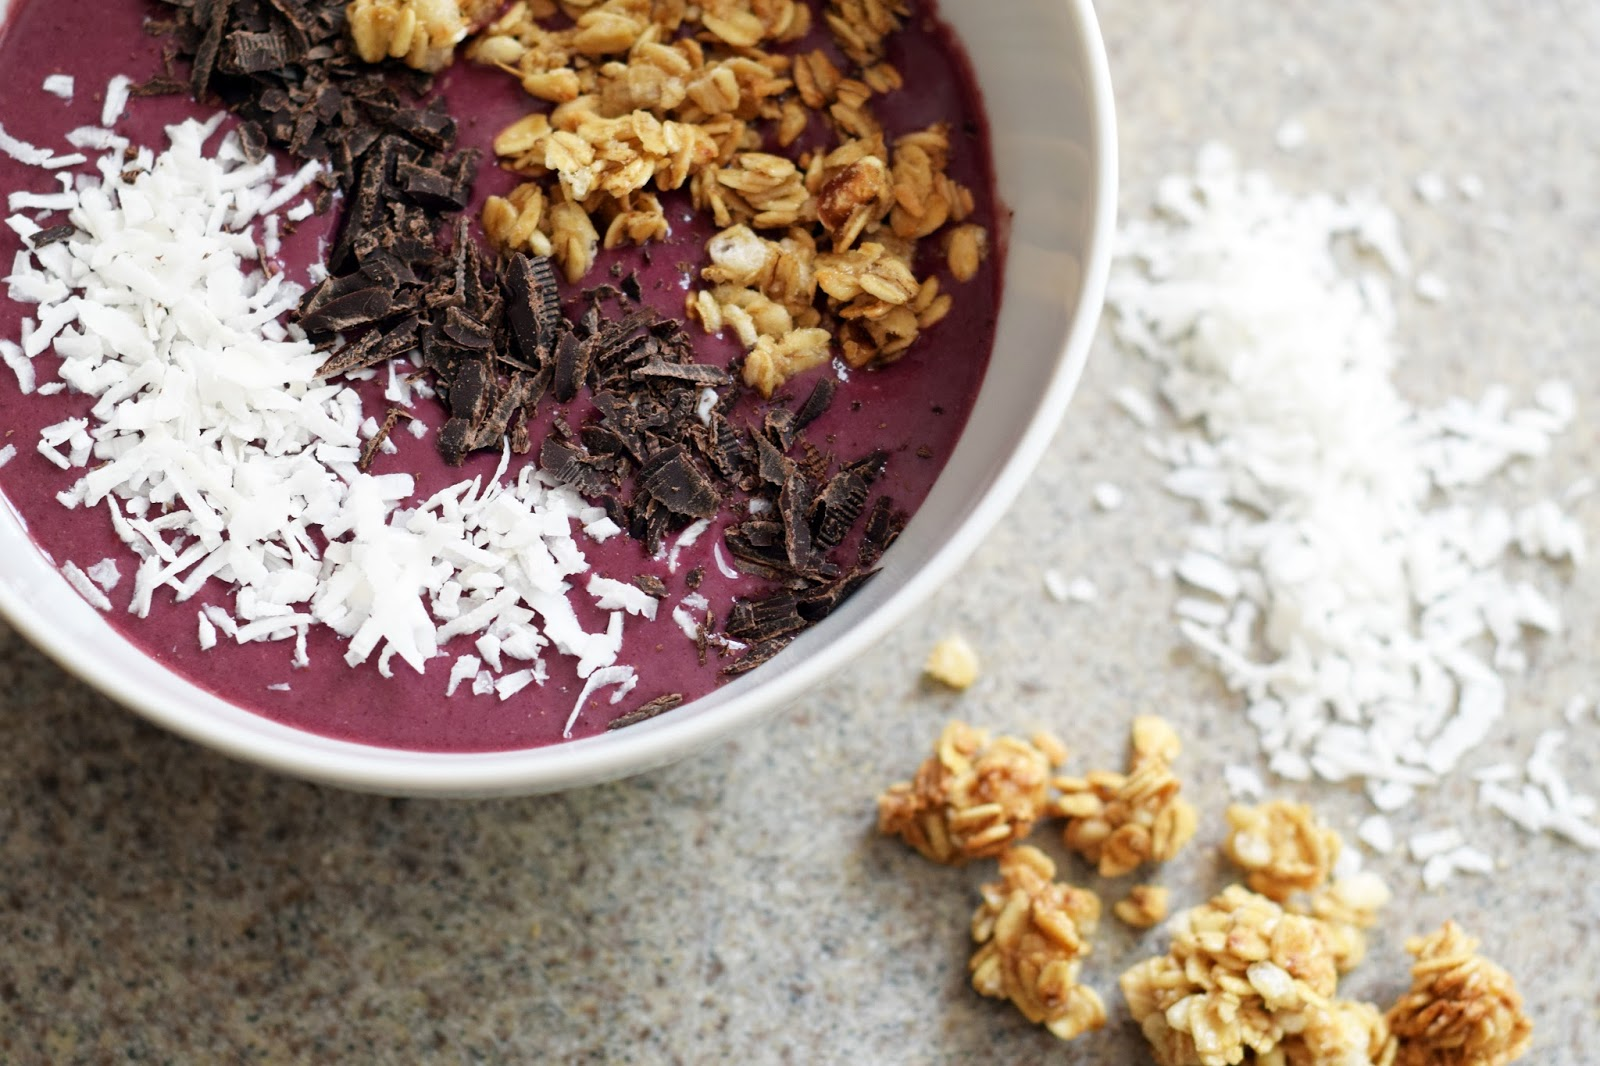 So, What's All This About Açai Bowls?